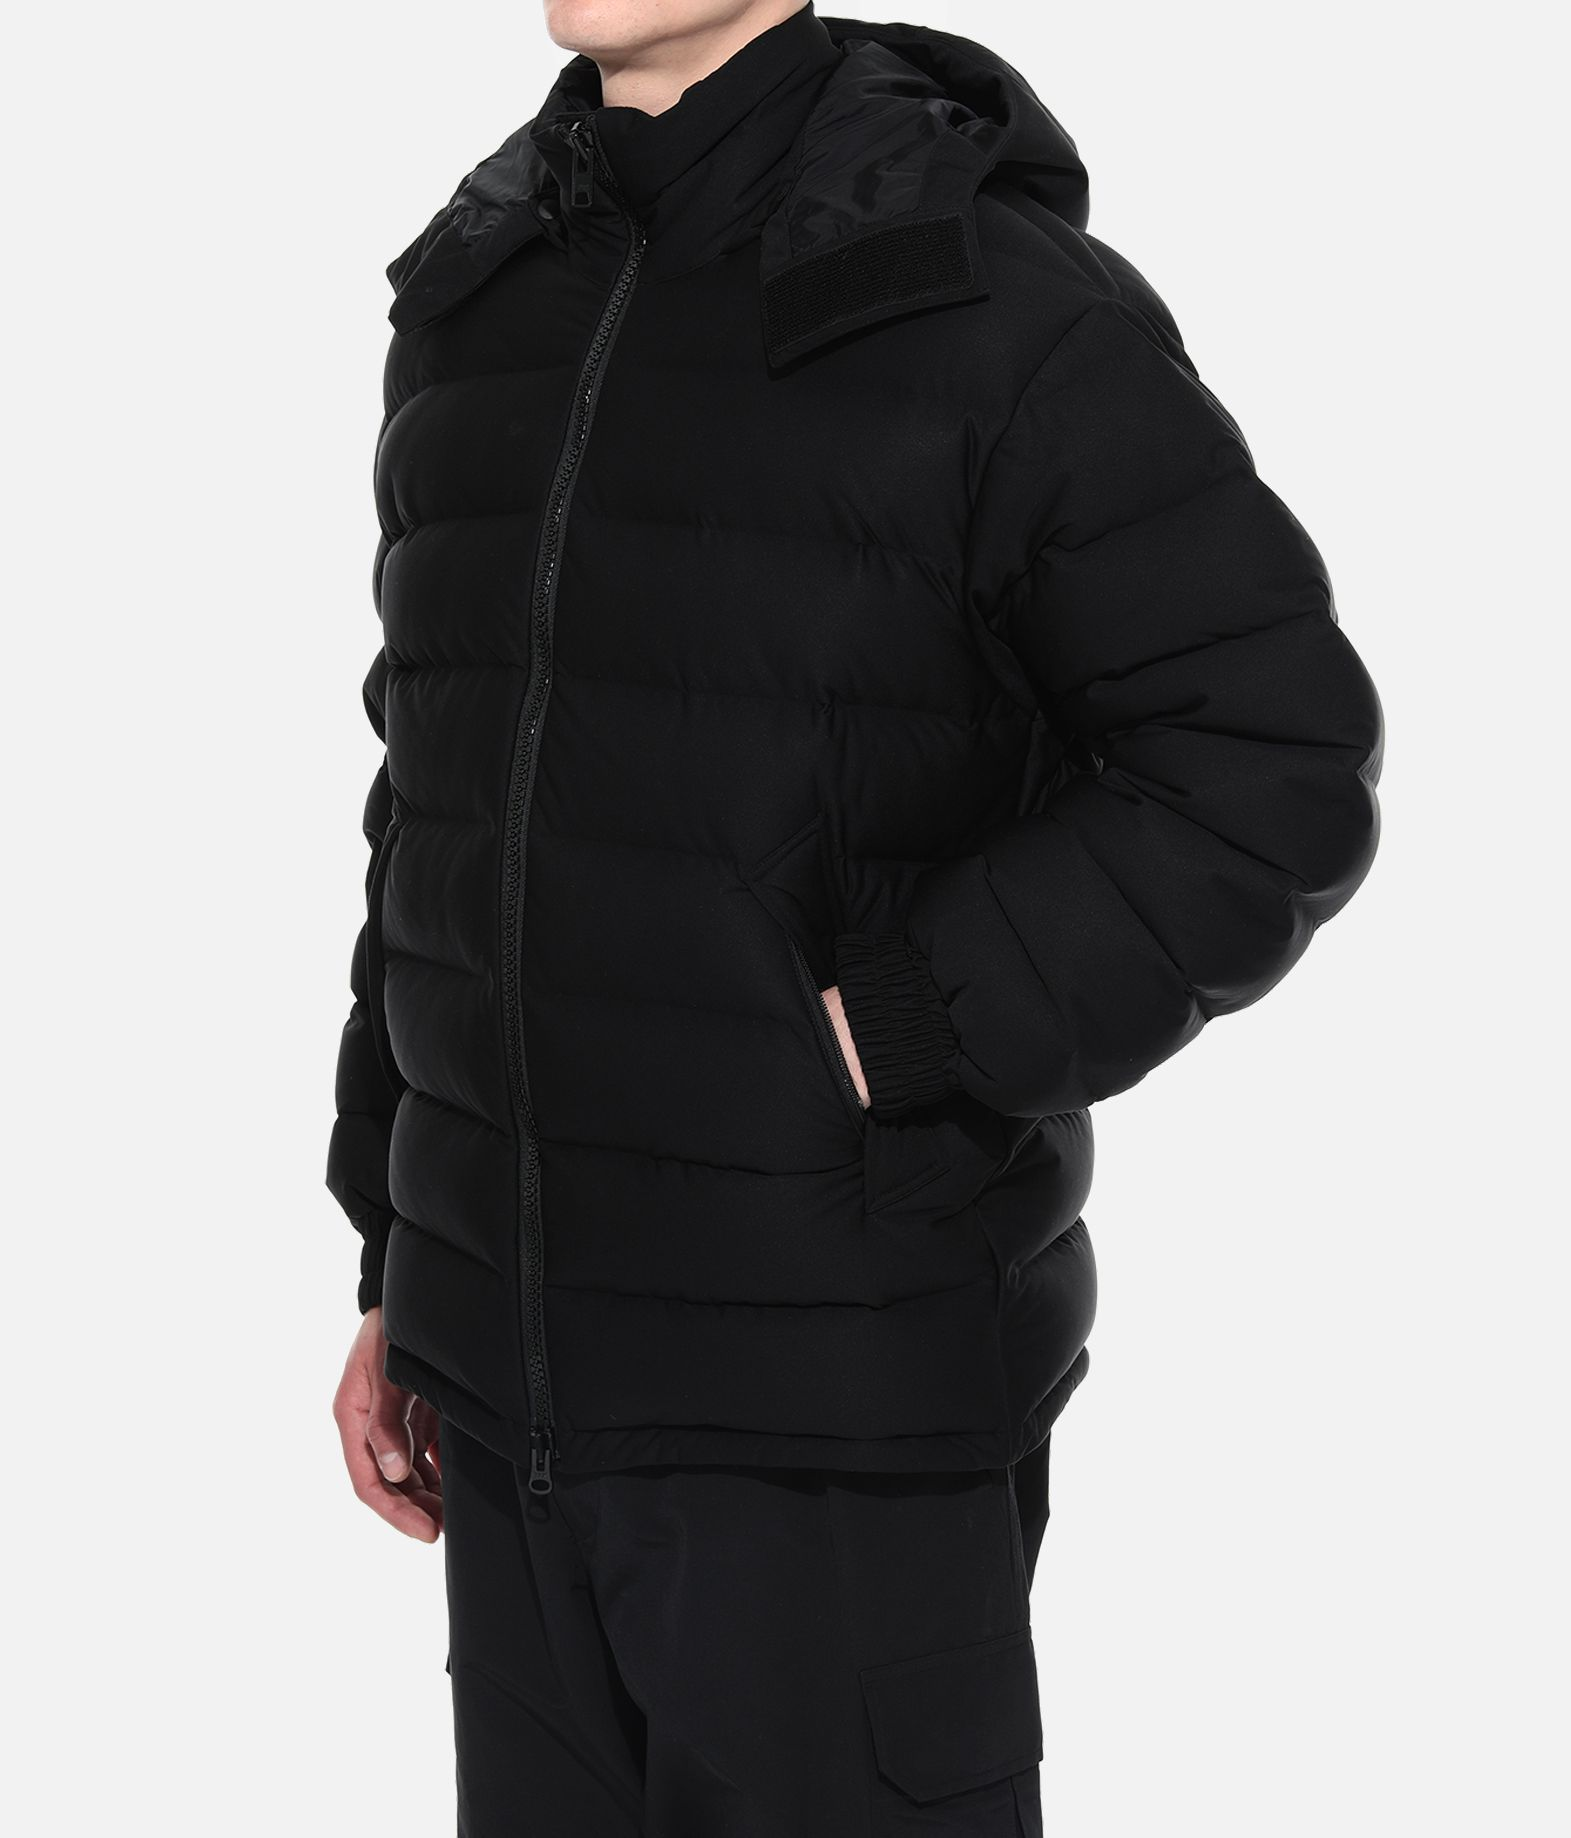 Y-3 Y-3 Seamless Hooded Down Jacket Down jacket Man e